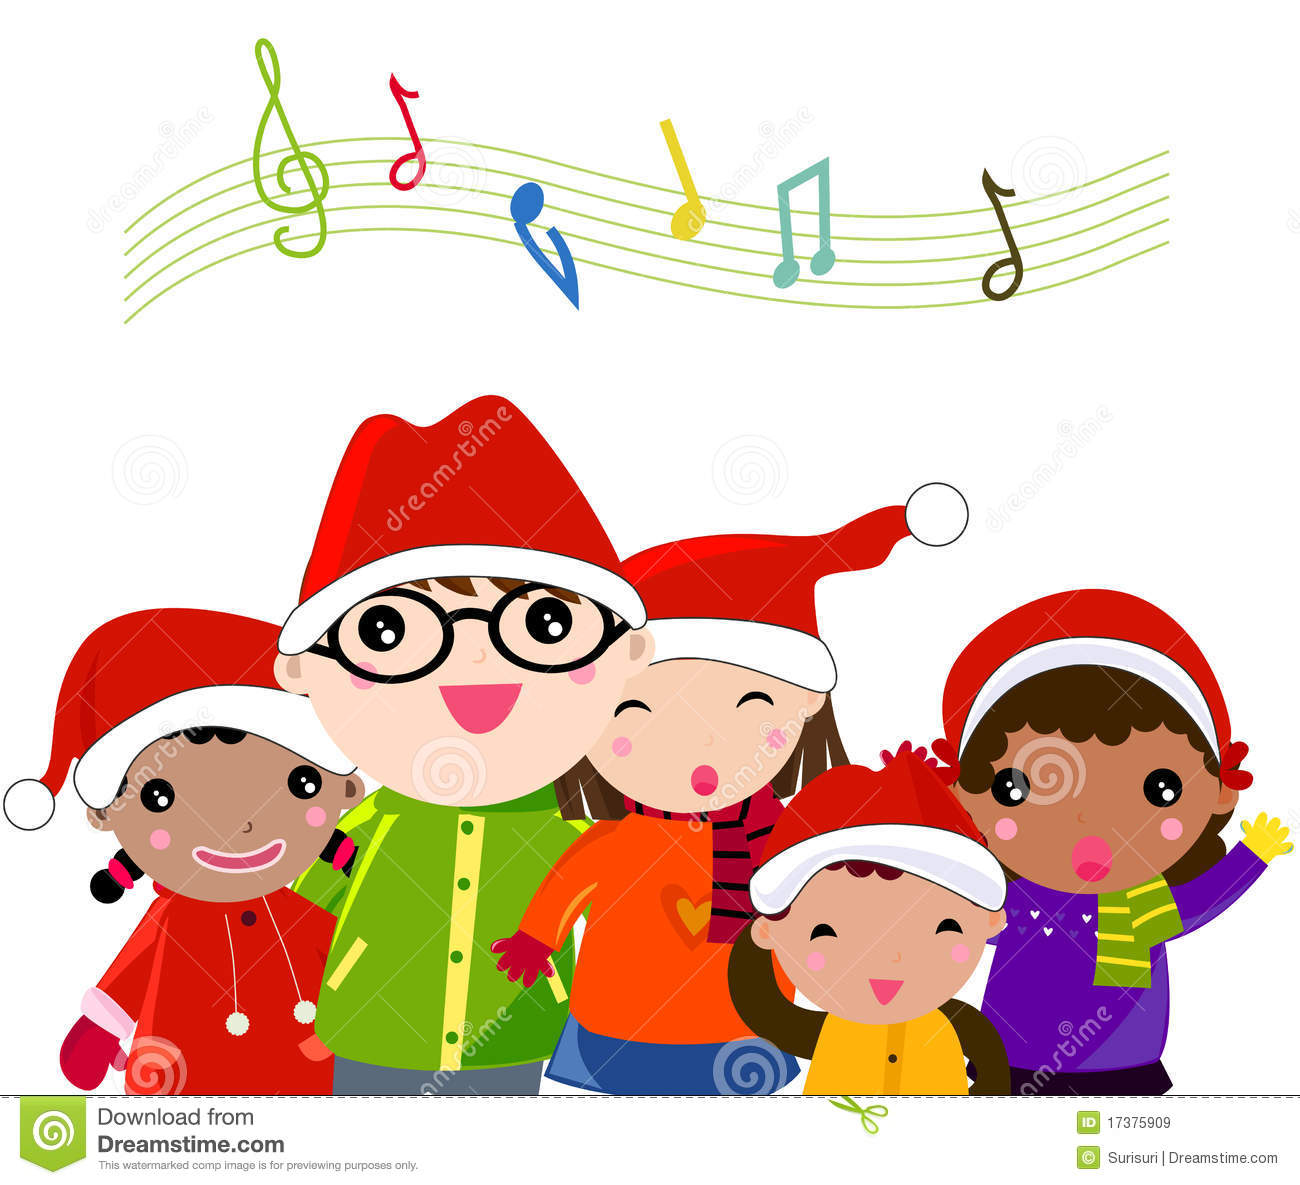 Clipart Christmas Trees Singing Christmas Carols.